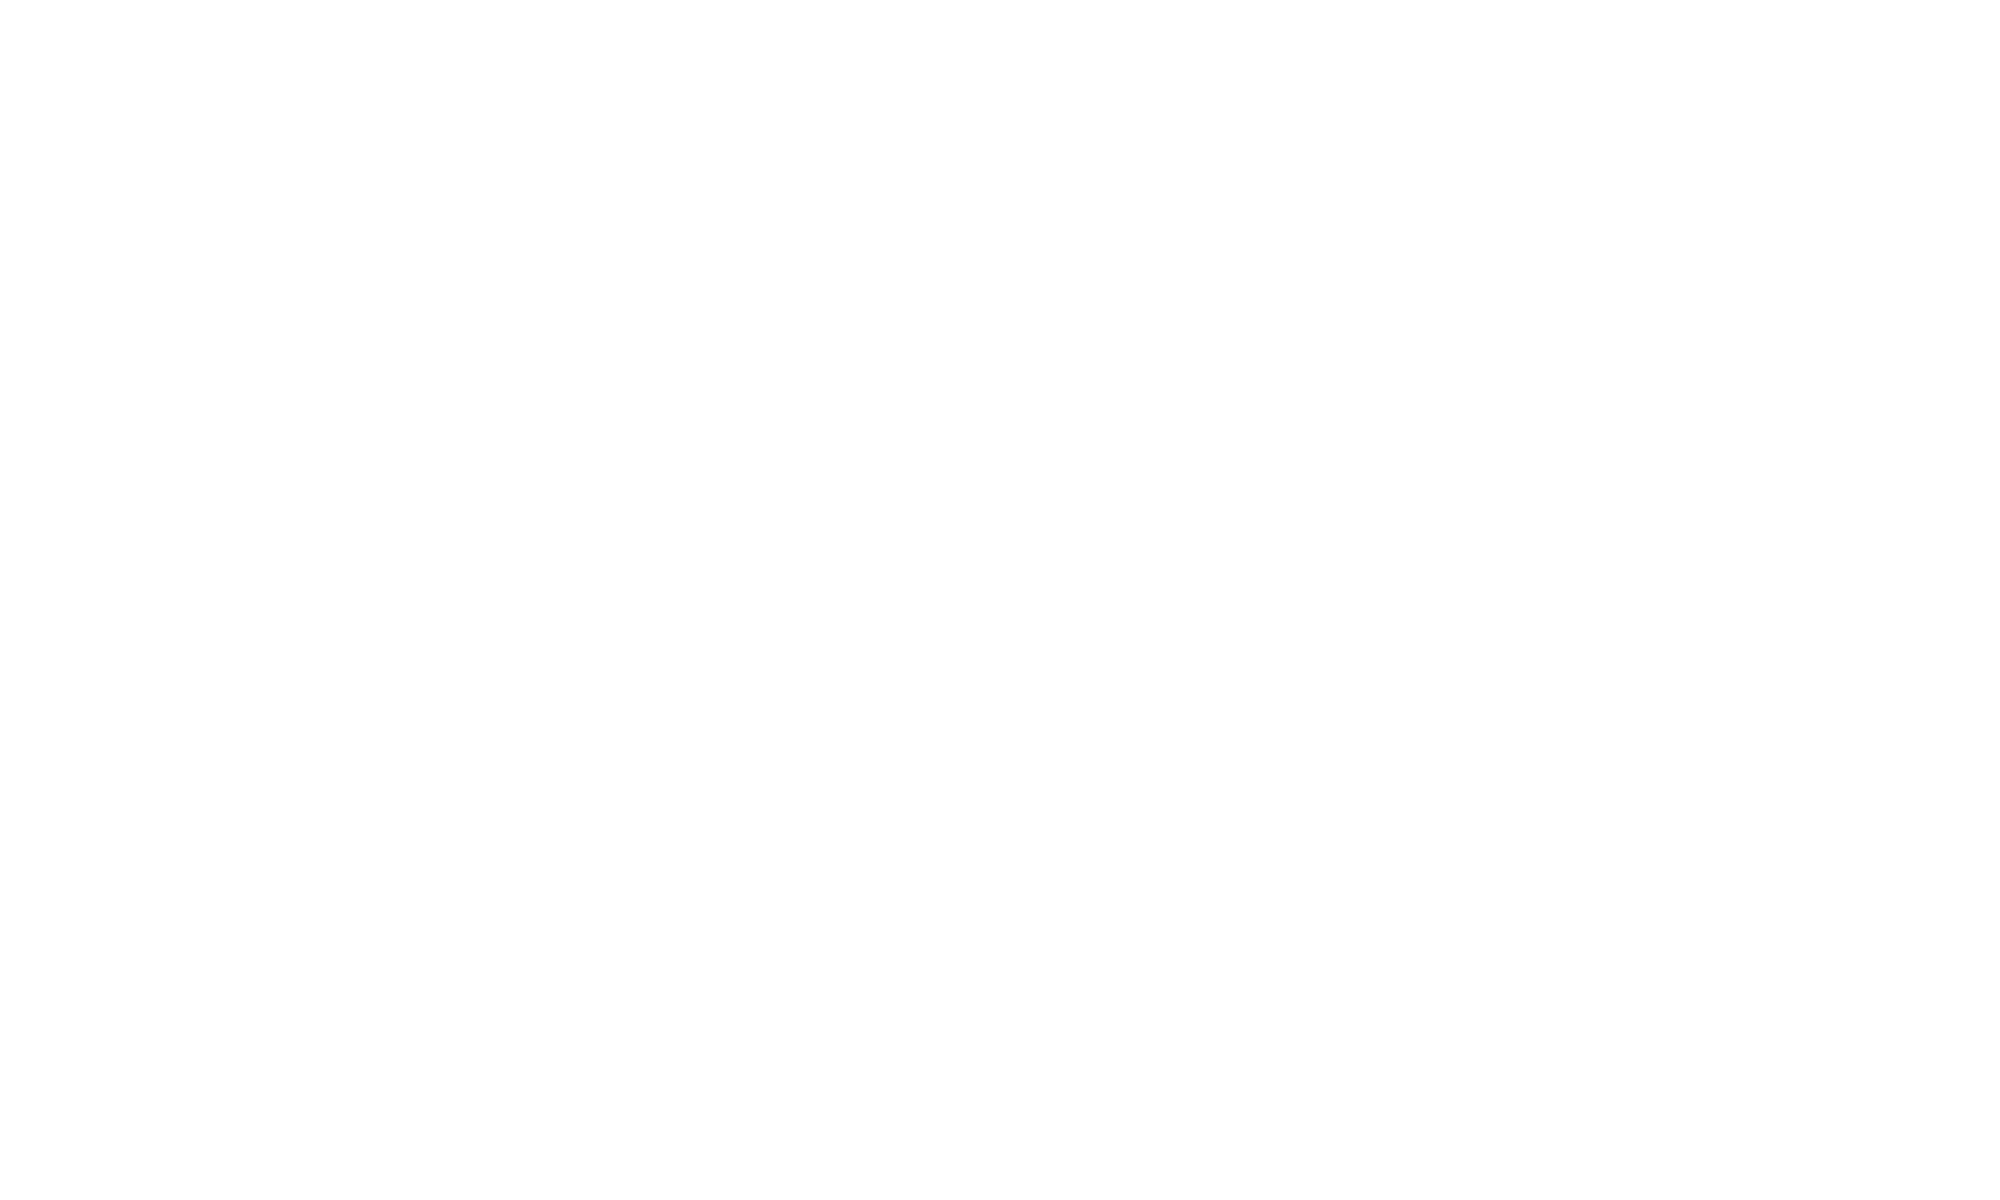 UMFF 2018 Official Selection Laurel